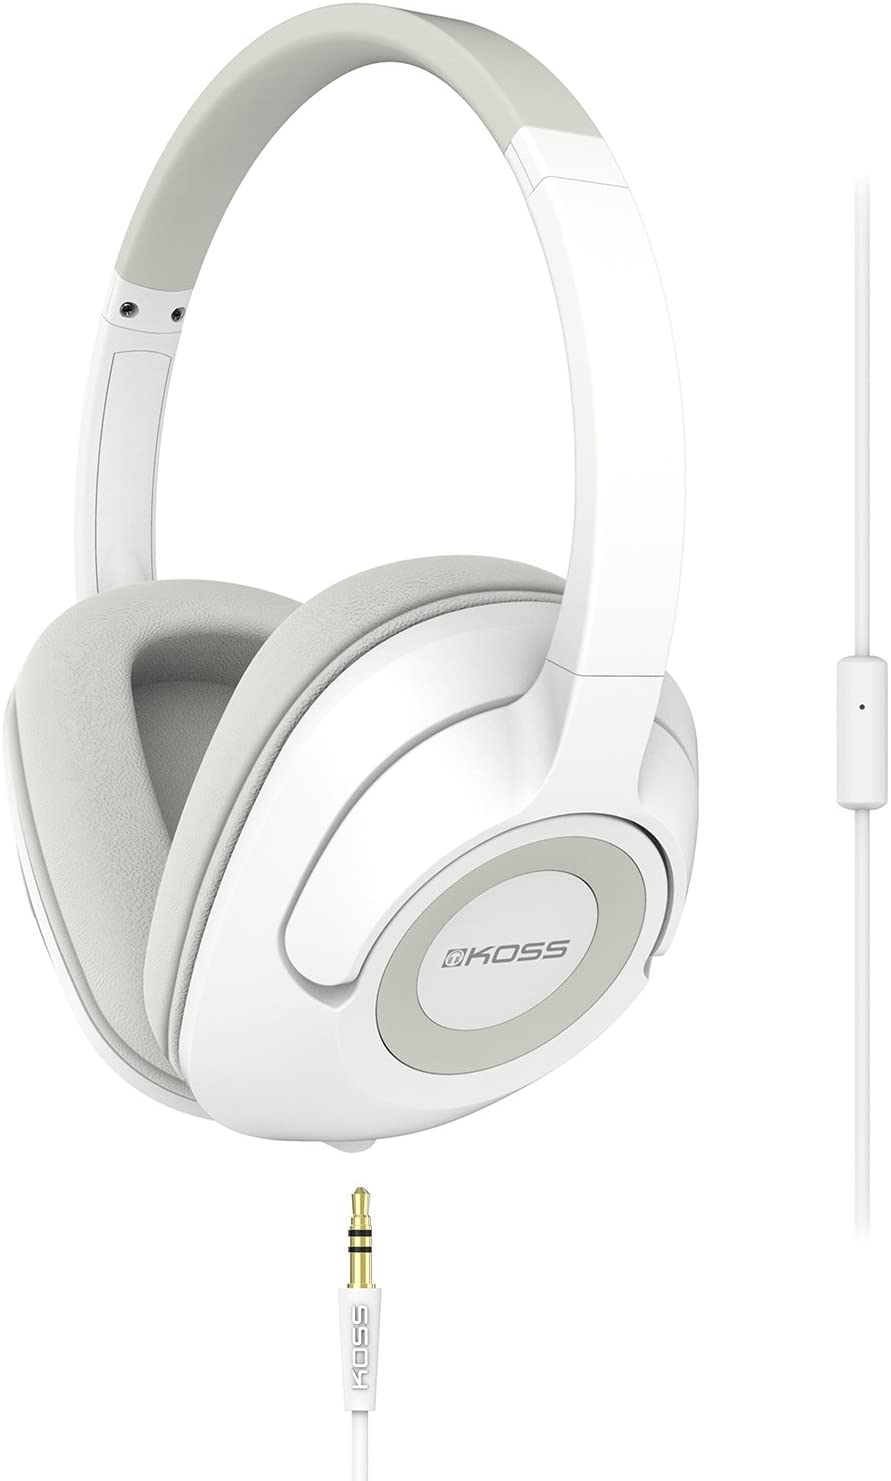 Koss UR42iW Over-Ear Headphones, in-Line Microphone and Touch Remote Control, Detachable Dual Choice Entry Cord, Wired with 3.5mm Plug, White